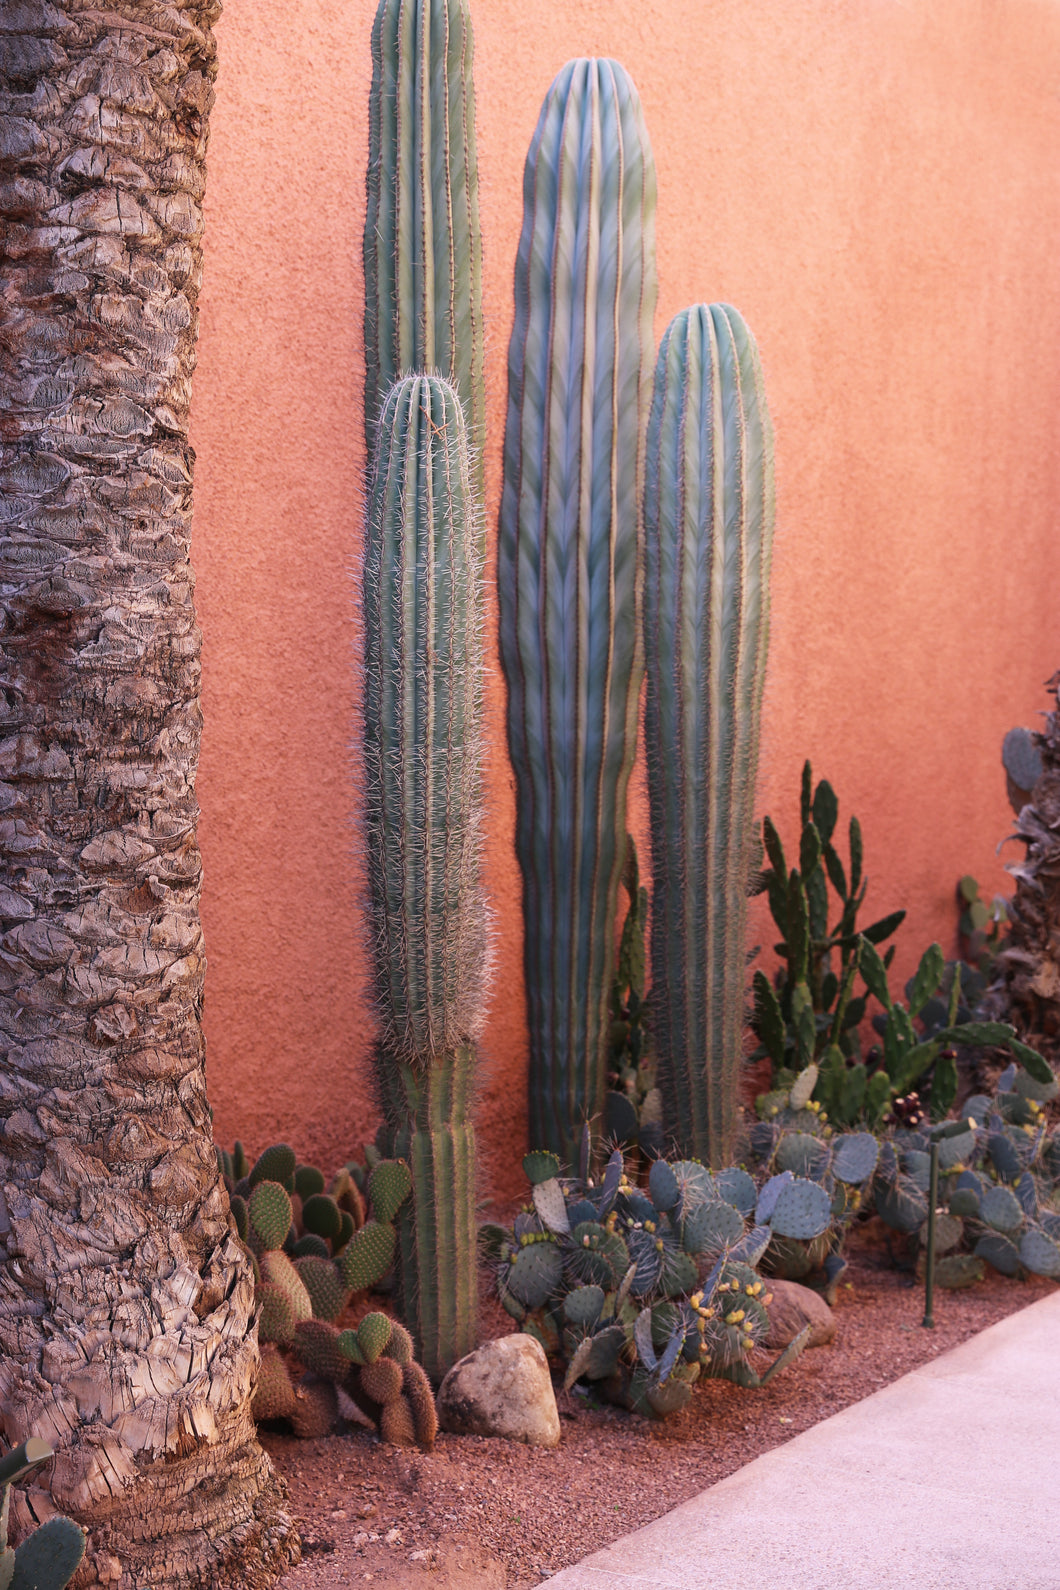 Cactus by Mary-Ellen Hinton